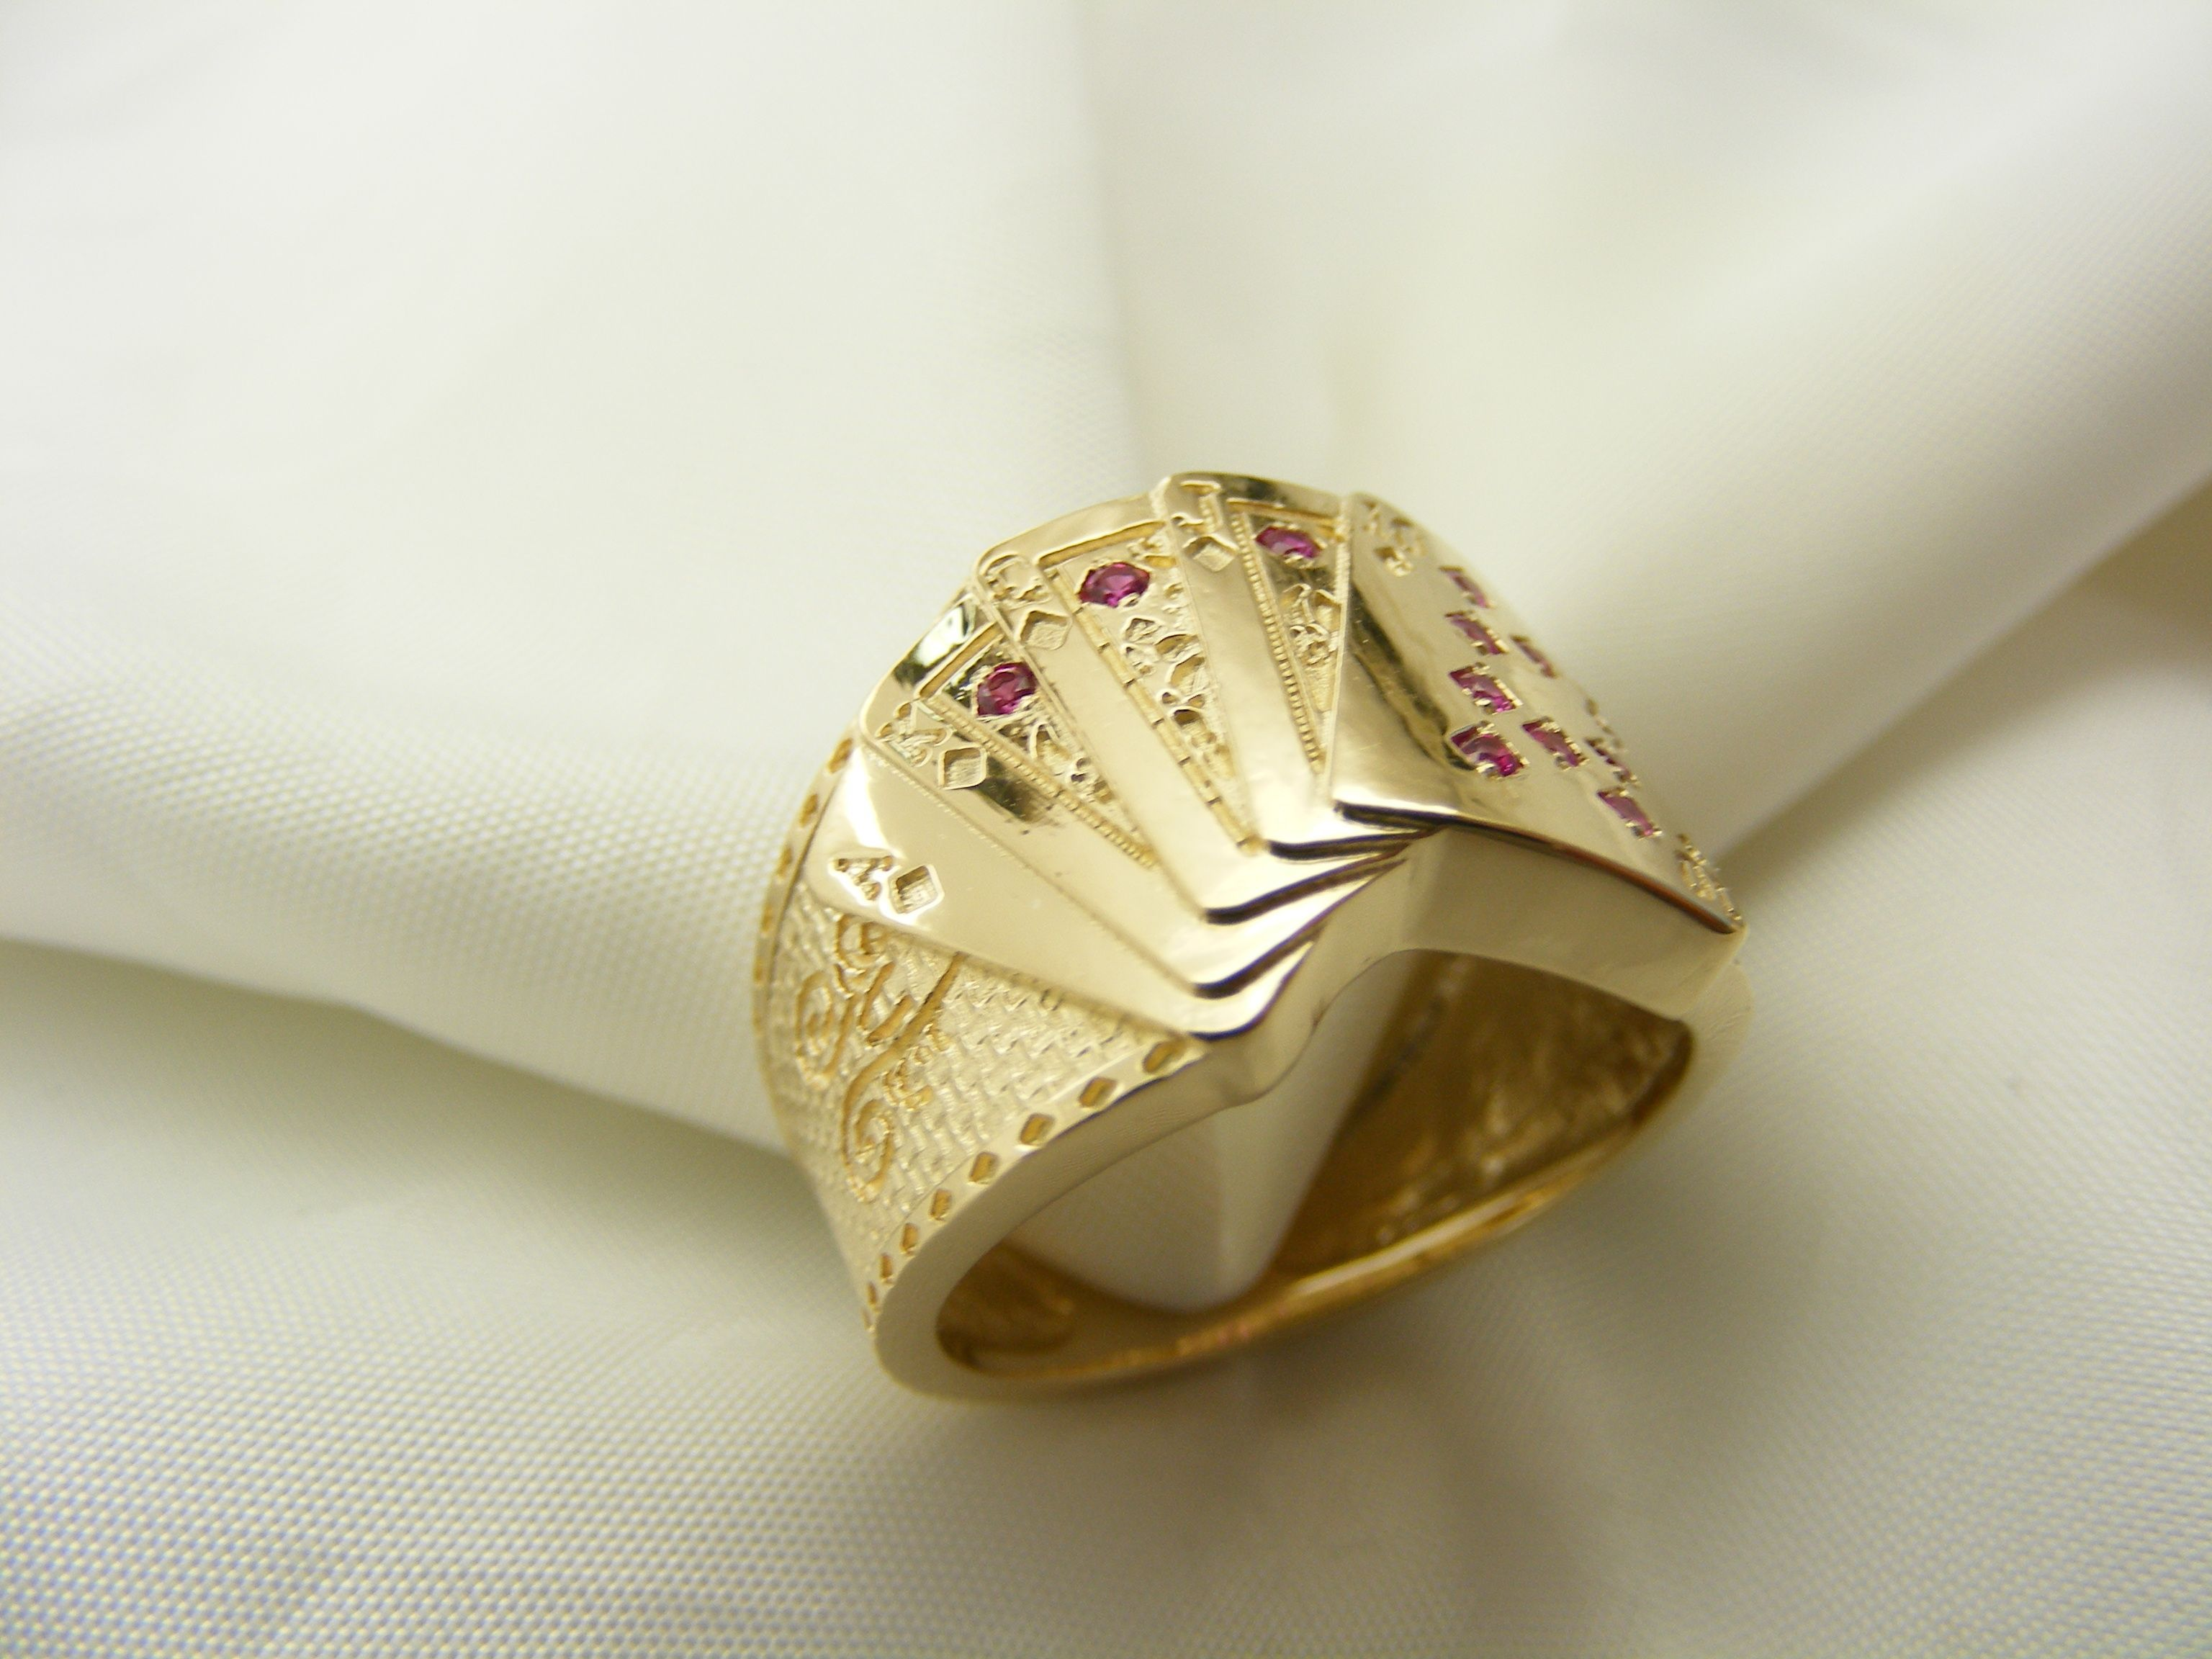 cfa73adf3 Custom Made Royal Flush Ring | Miscellaneous in 2019 | Rings ...